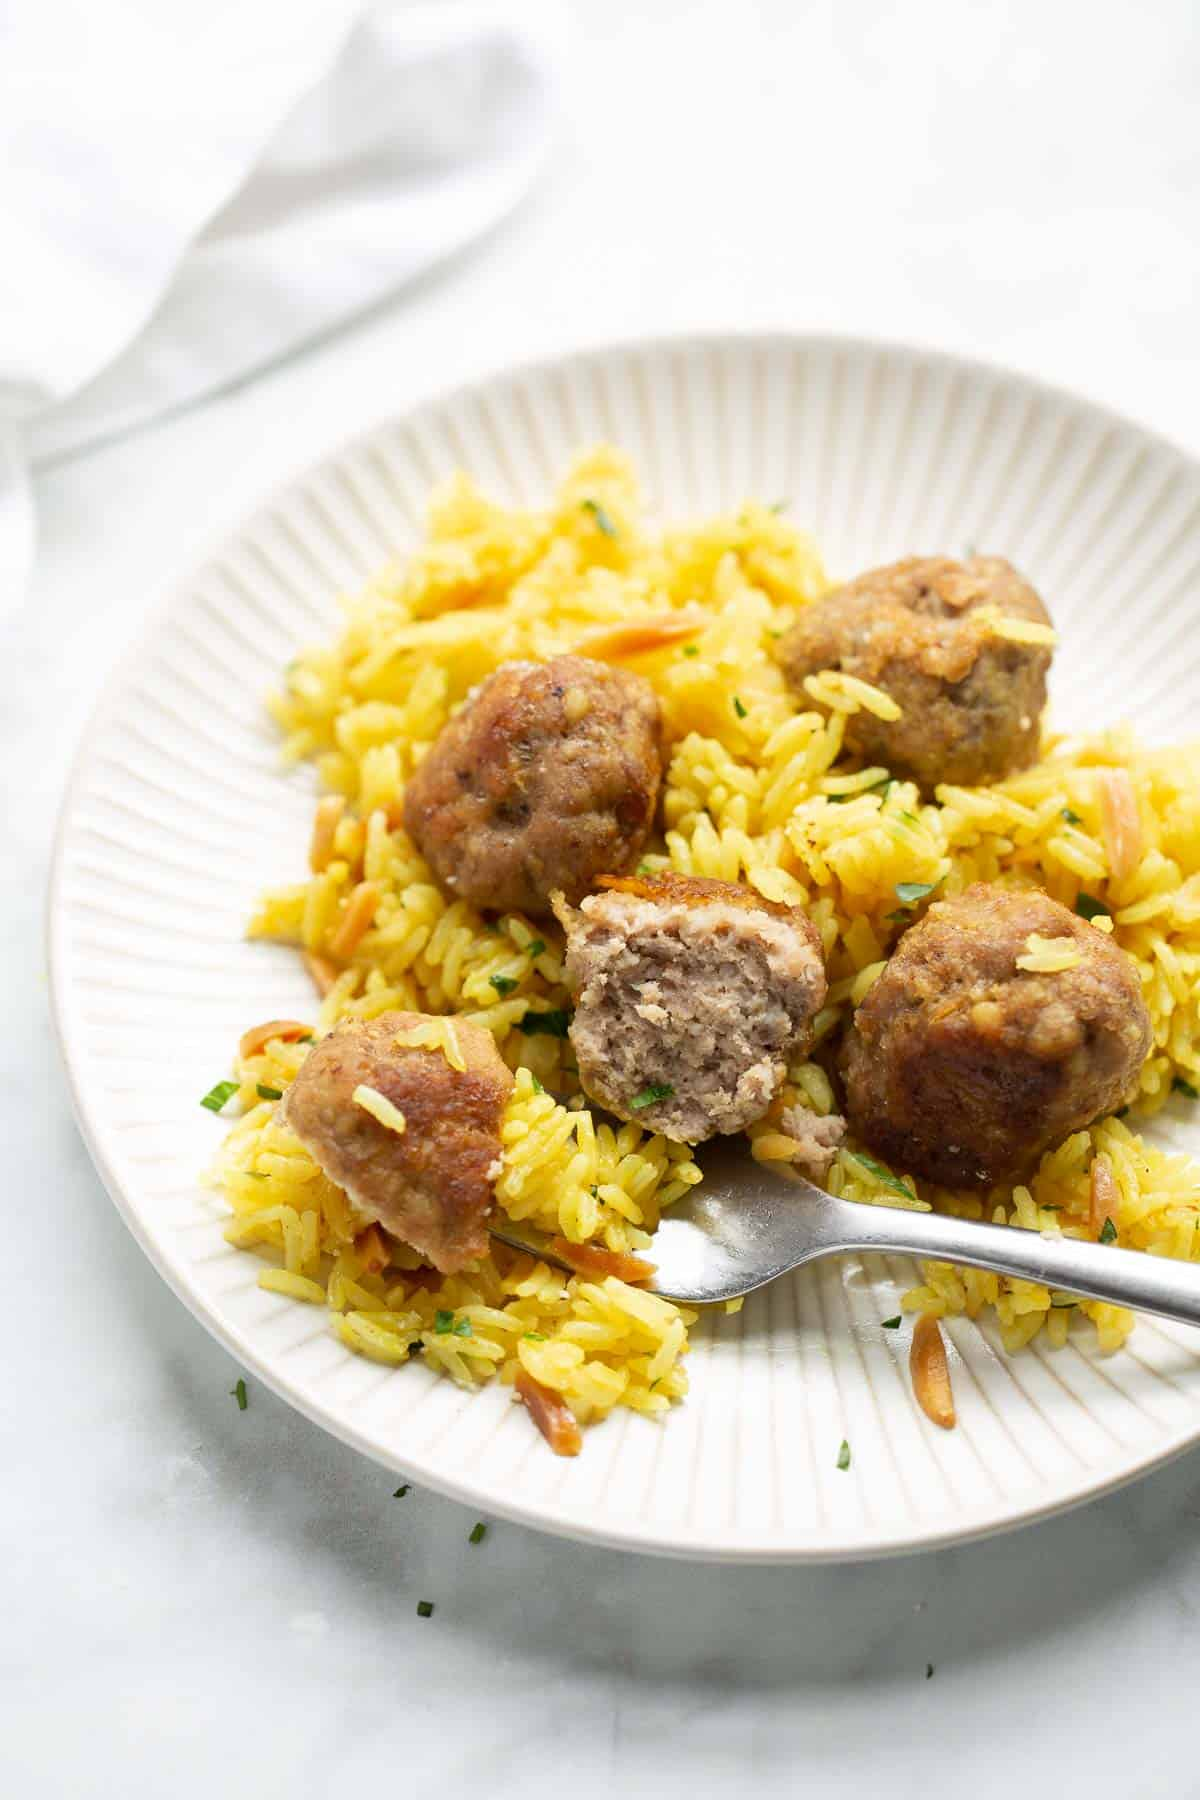 turkey meatball with bite on fork and yellow rice on white plate